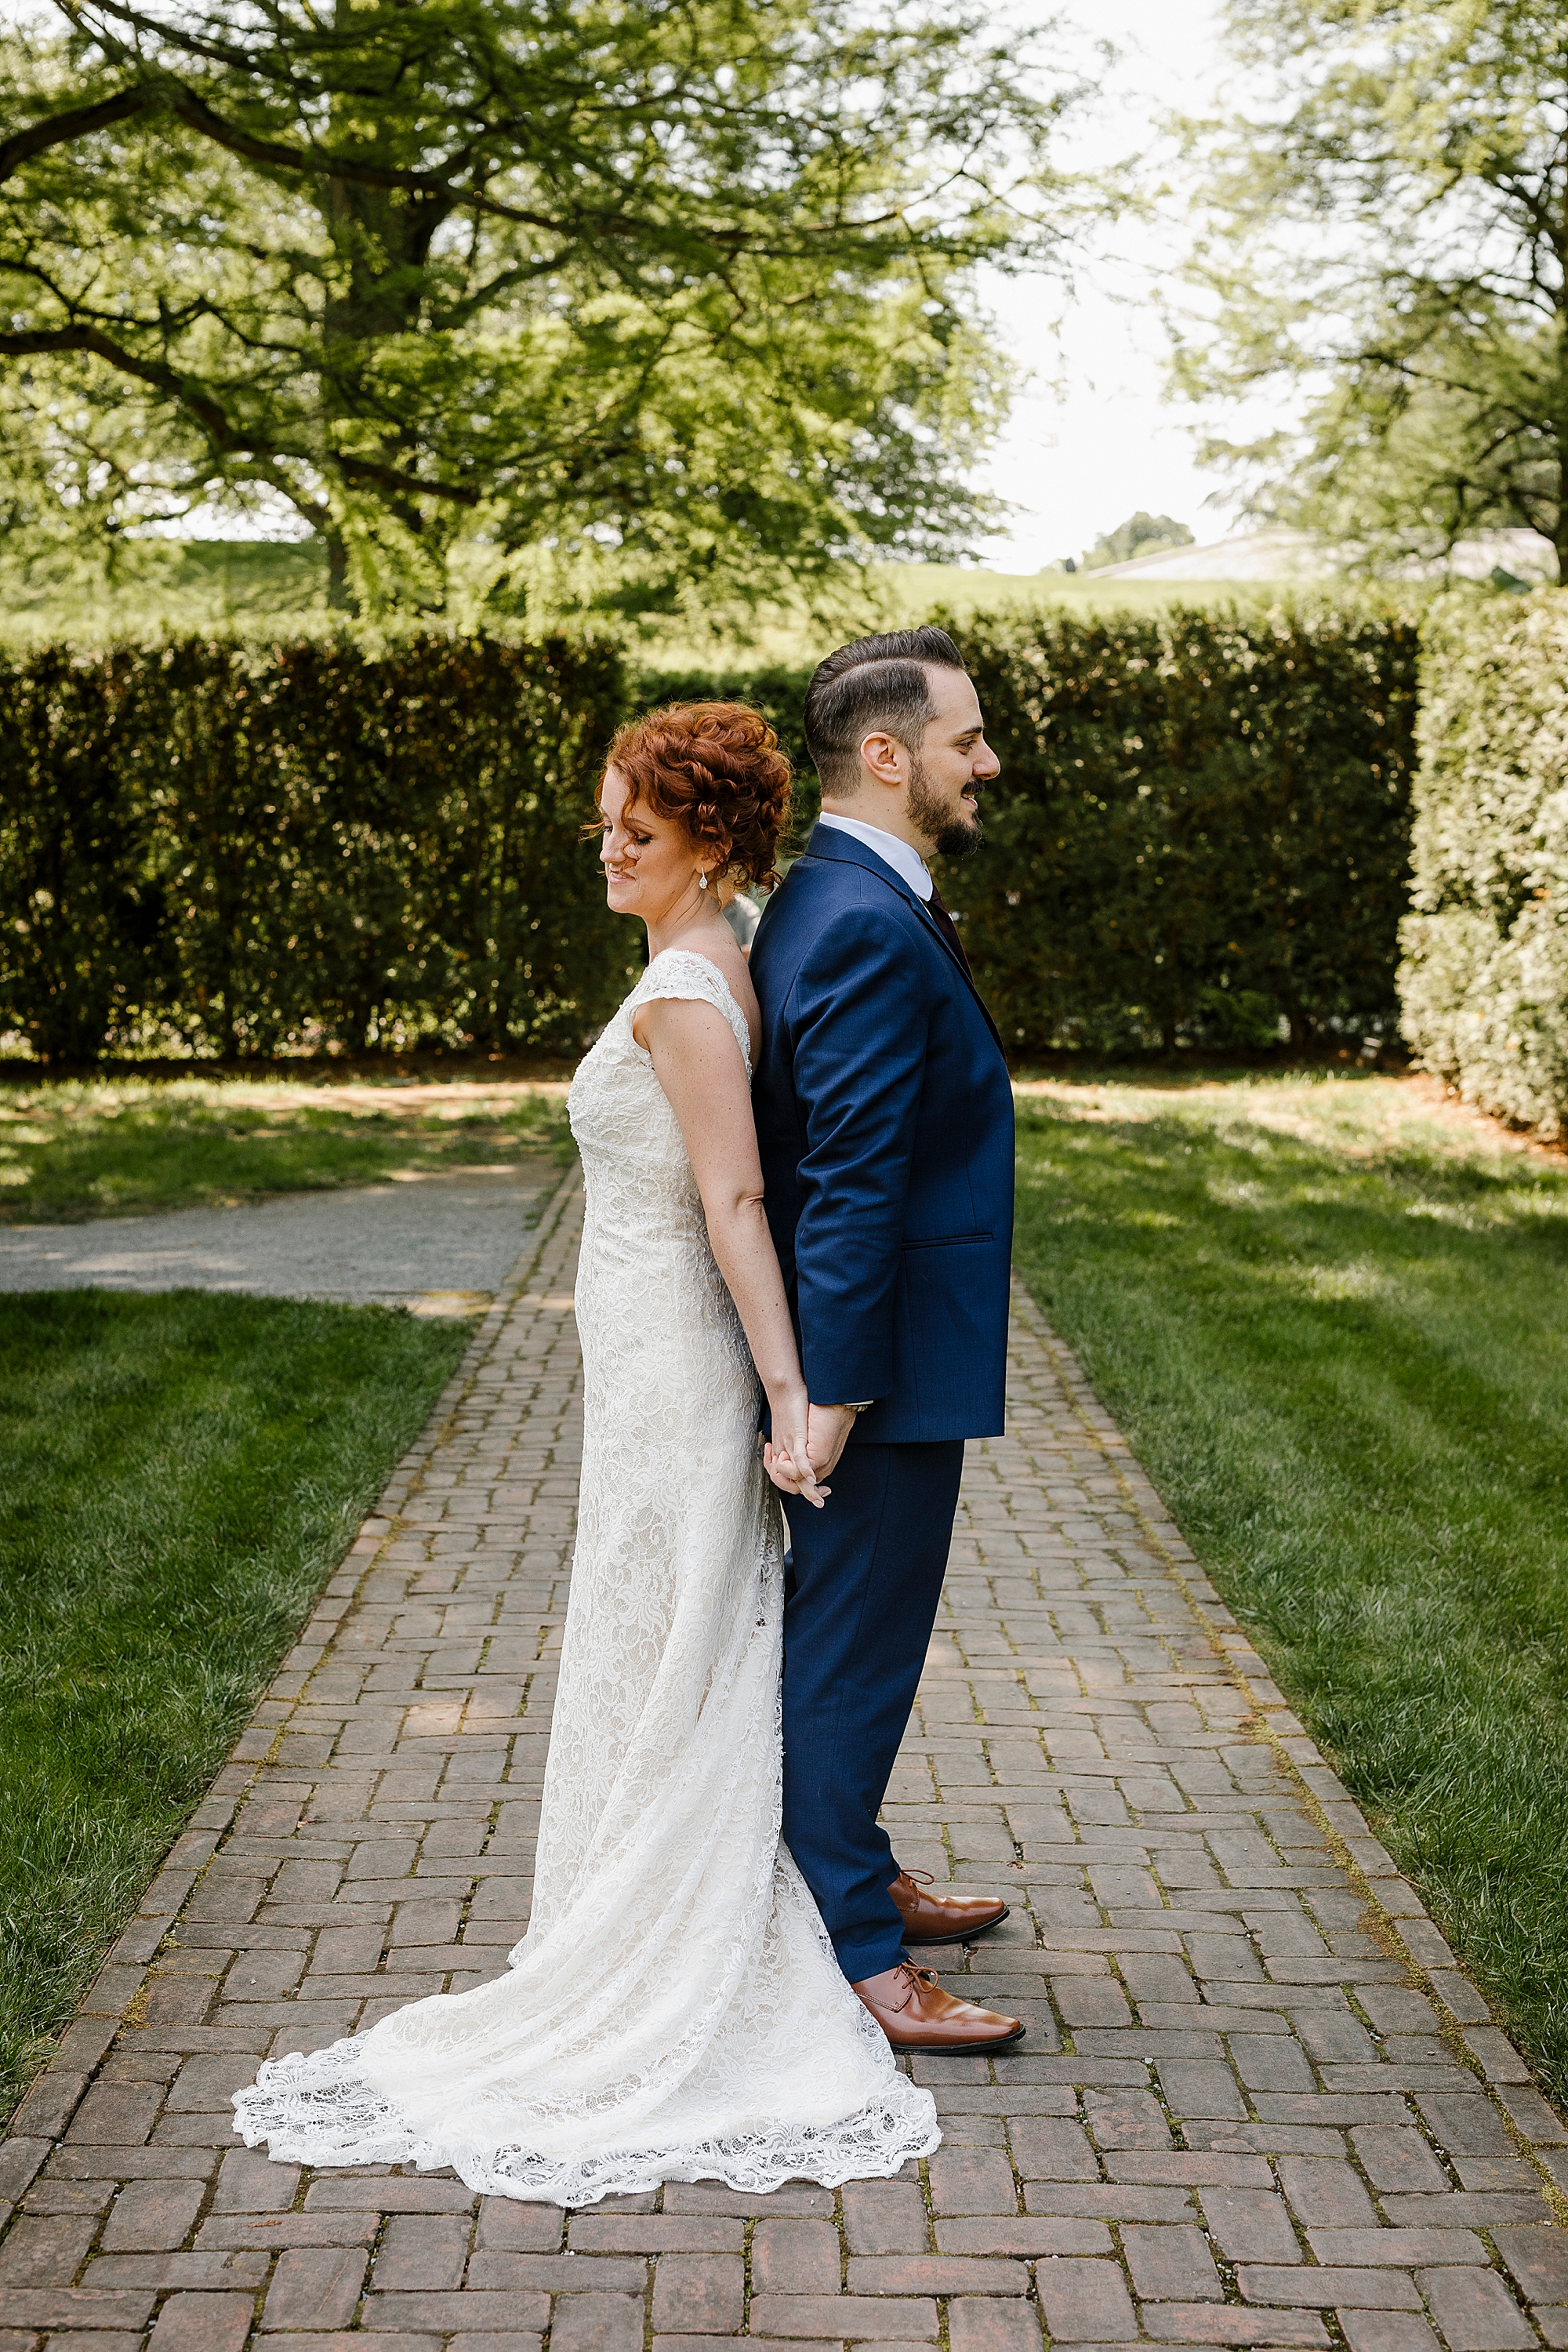 Megan and Daniel_Northbrook_Marketplace_Longwood_Gardens_Chester_County_Unionville_Love_by_Joe_Mac_Wedding_photography__0027.jpg